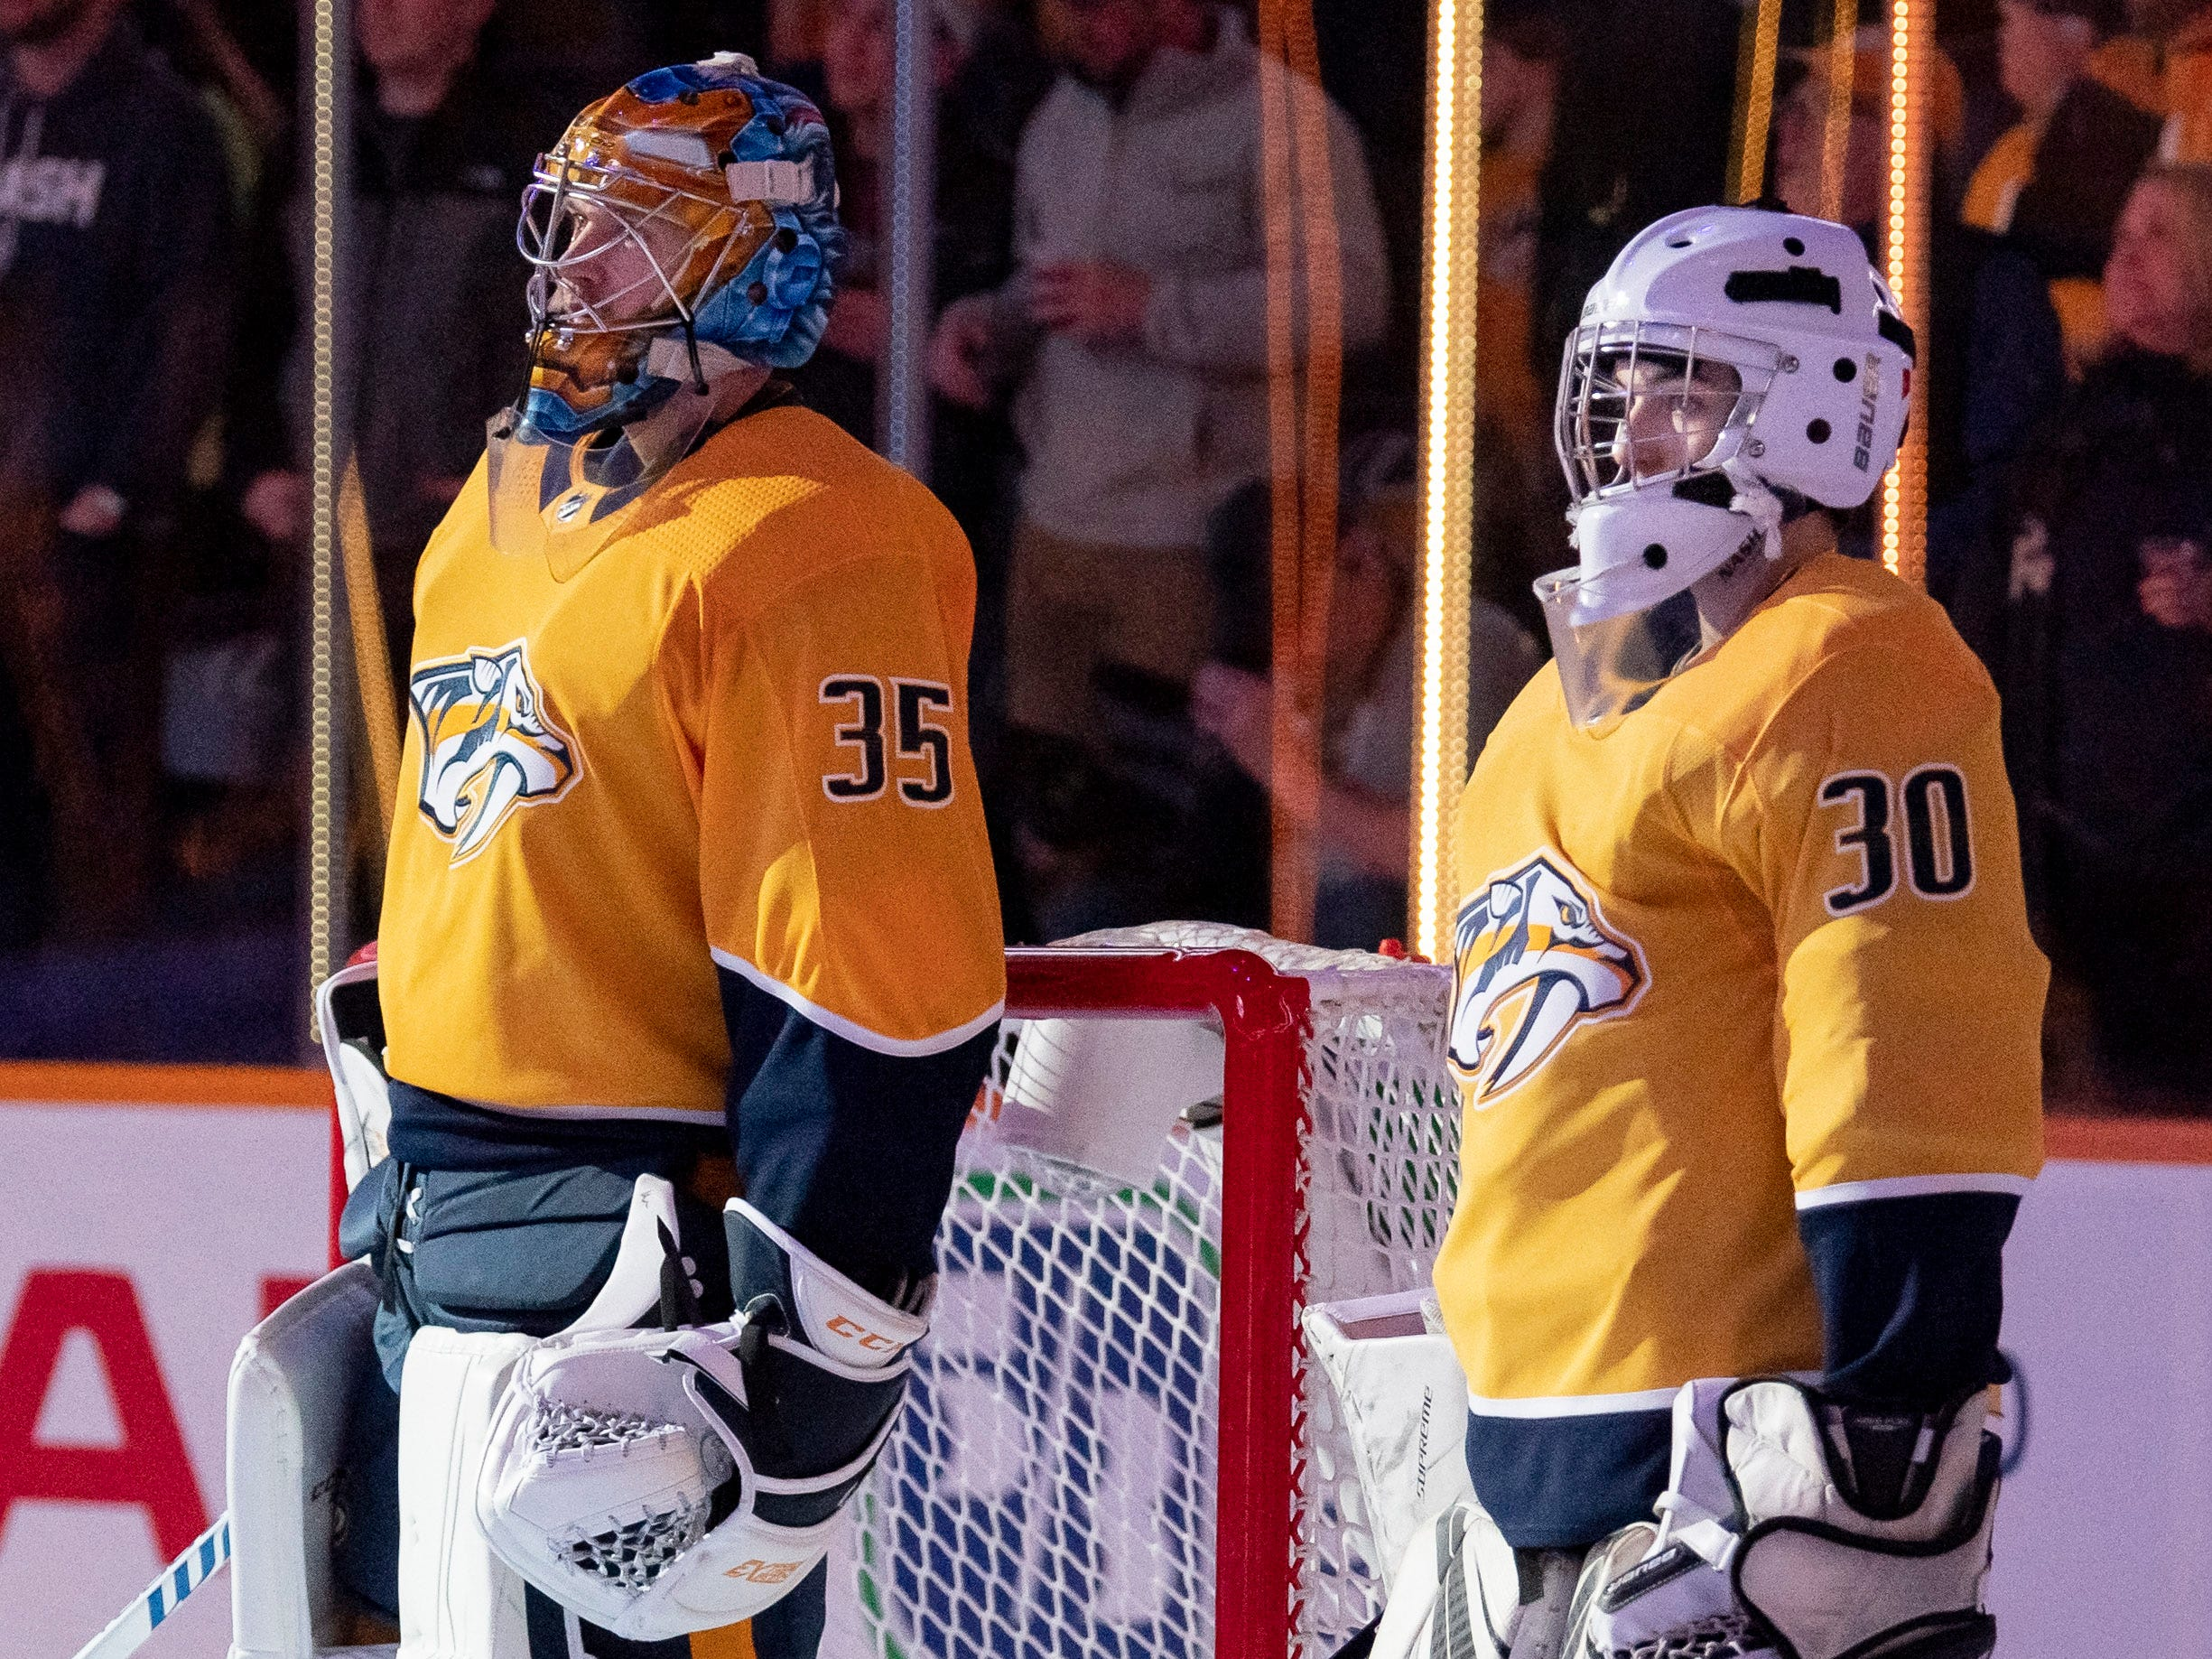 Make-A-Wish recipient Jacob Piros stands with Nashville Predators goaltender Pekka Rinne (35) before a game between the Nashville Predators and the Winnipeg Jets at Bridgestone Arena in Nashville, Tenn., Thursday, Jan. 17, 2019.